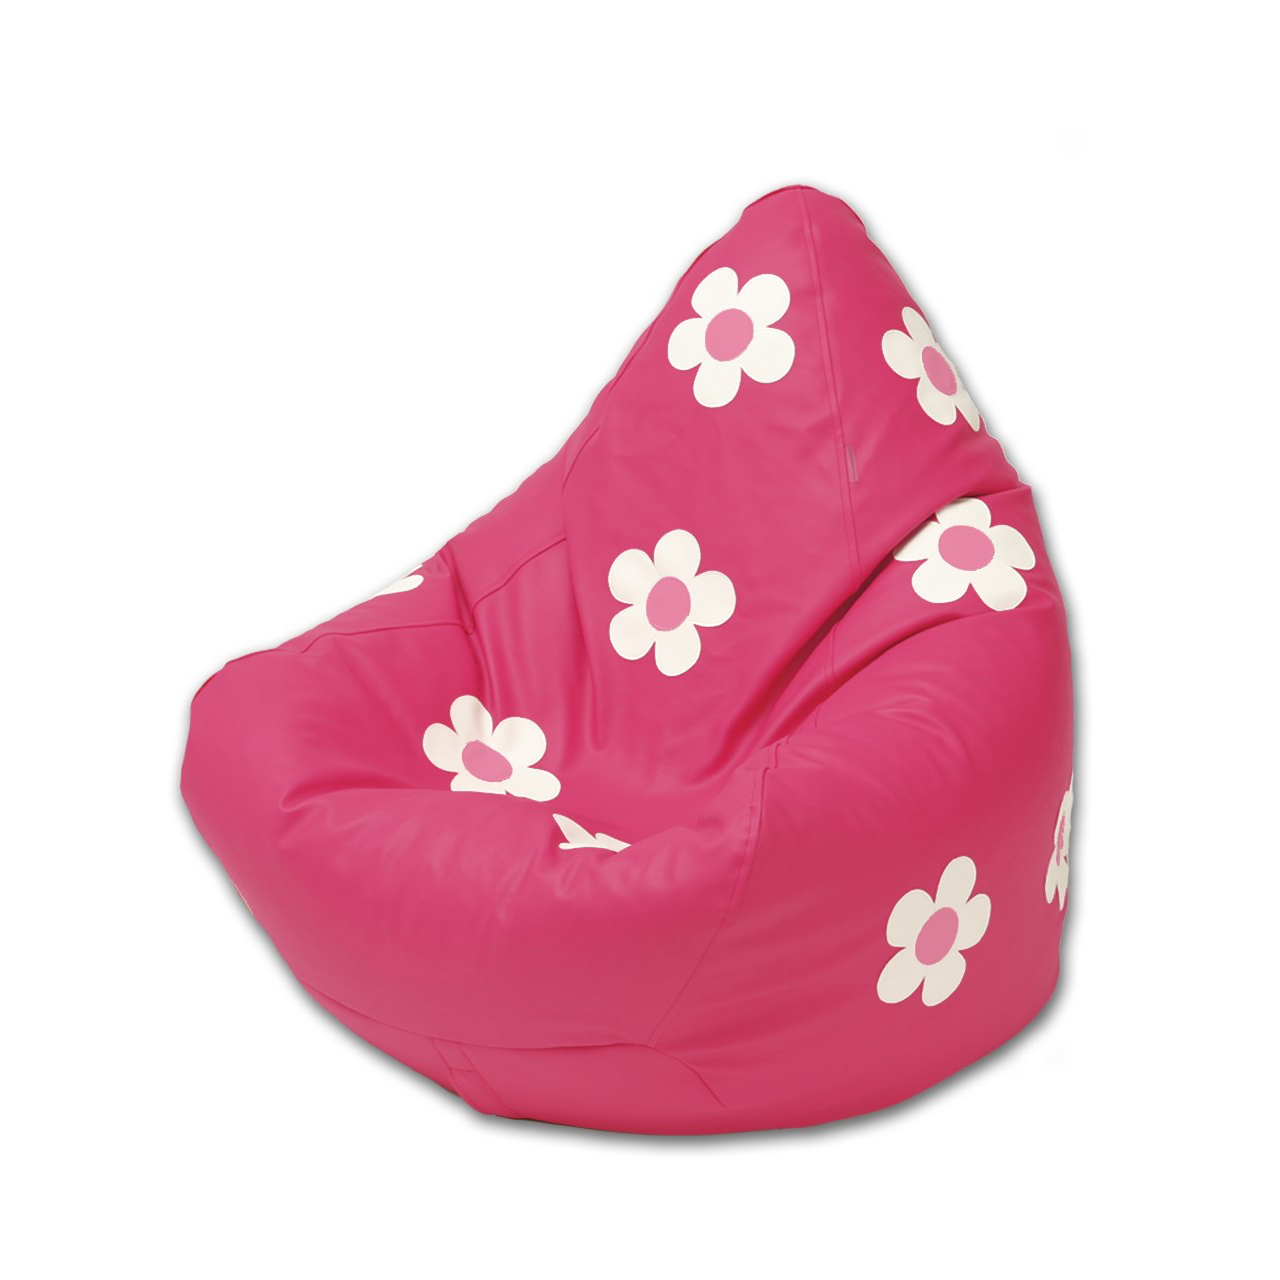 Daisy Bean Bag in flamingo